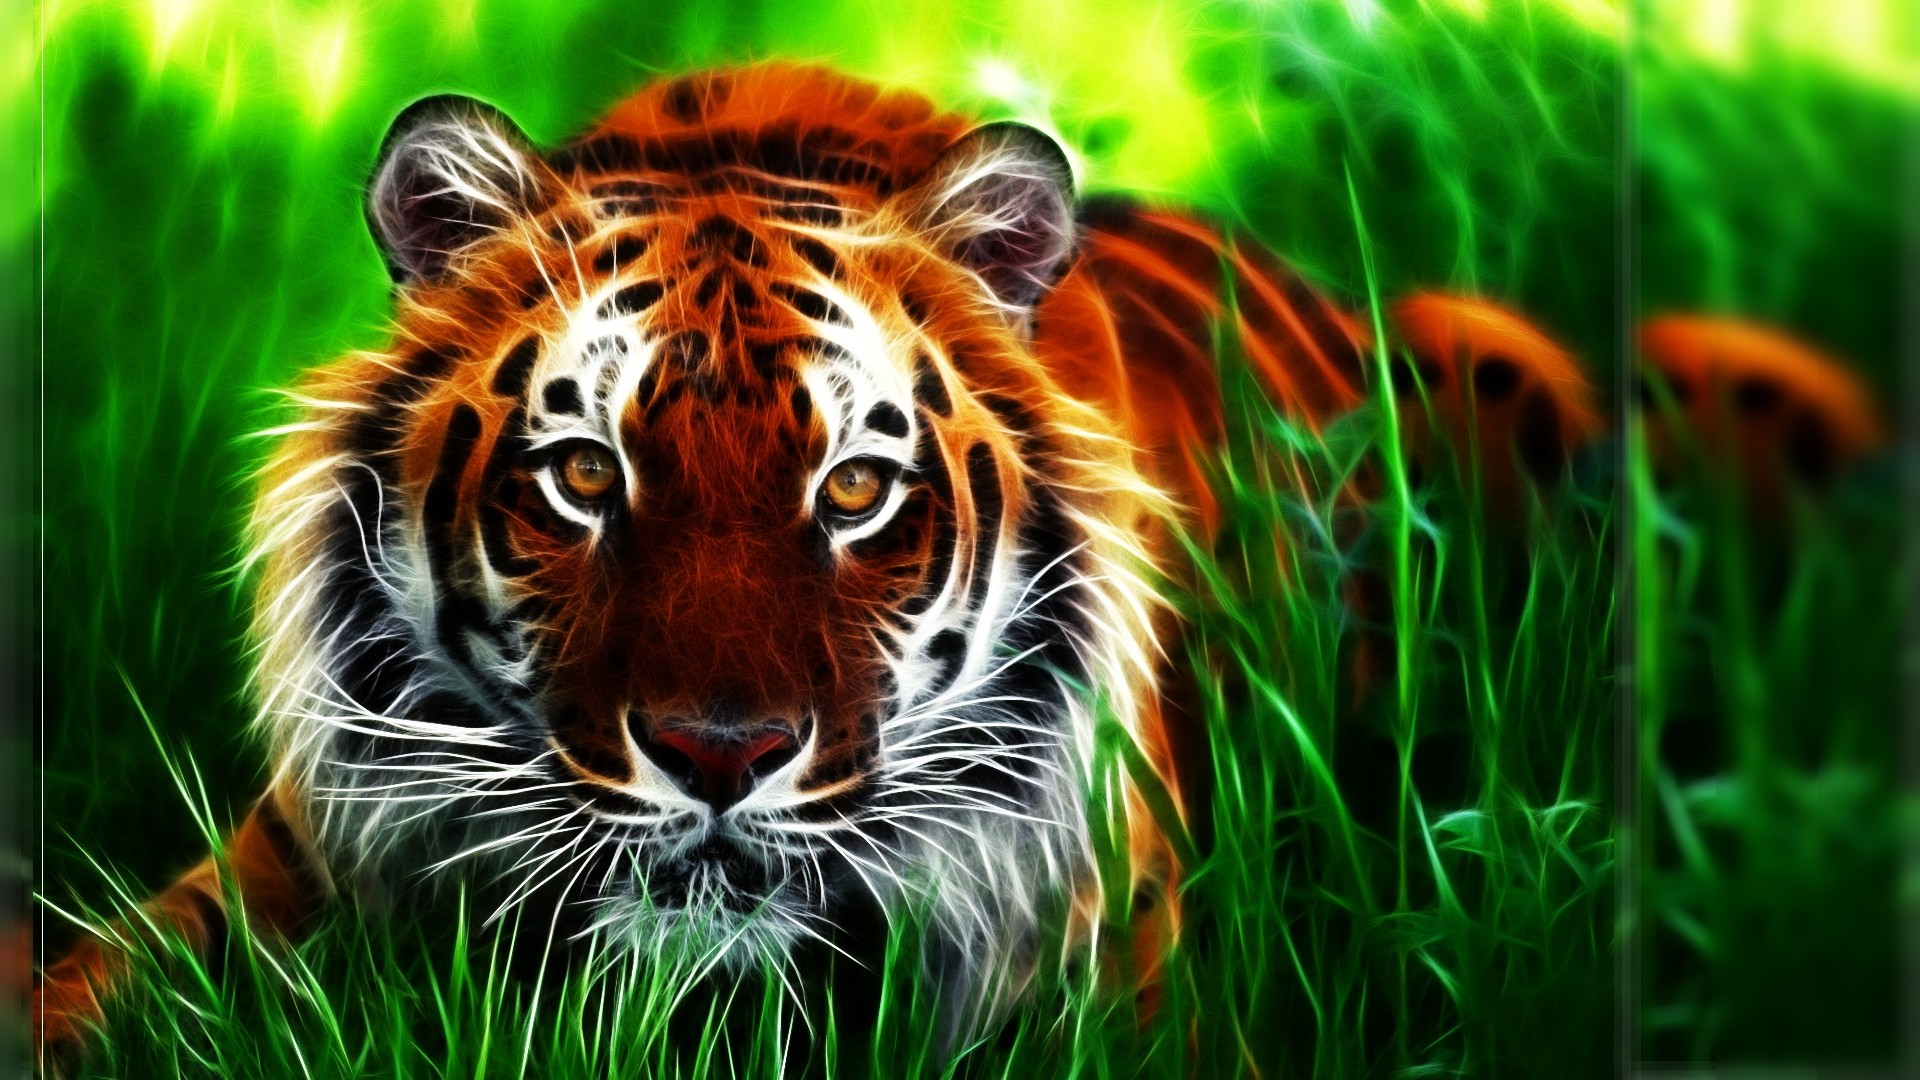 Cool Tiger Backgrounds – Free wallpaper download